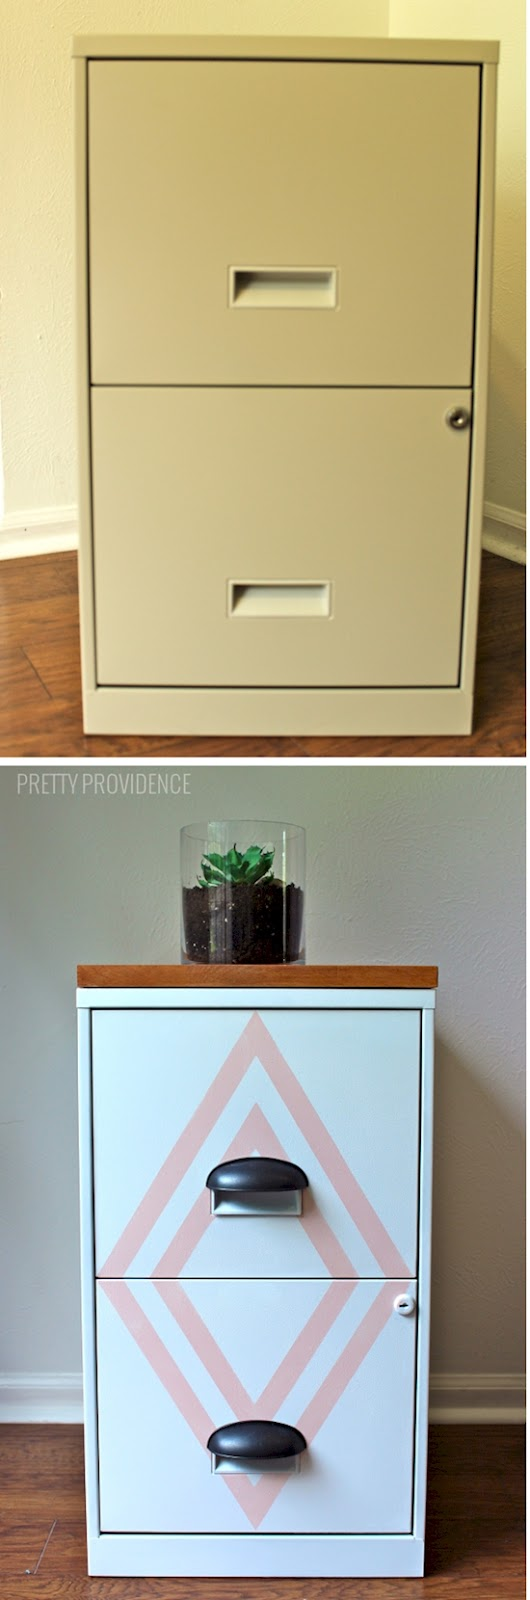 15 Projects That Will Transform Old Filing Cabinets | Do ...